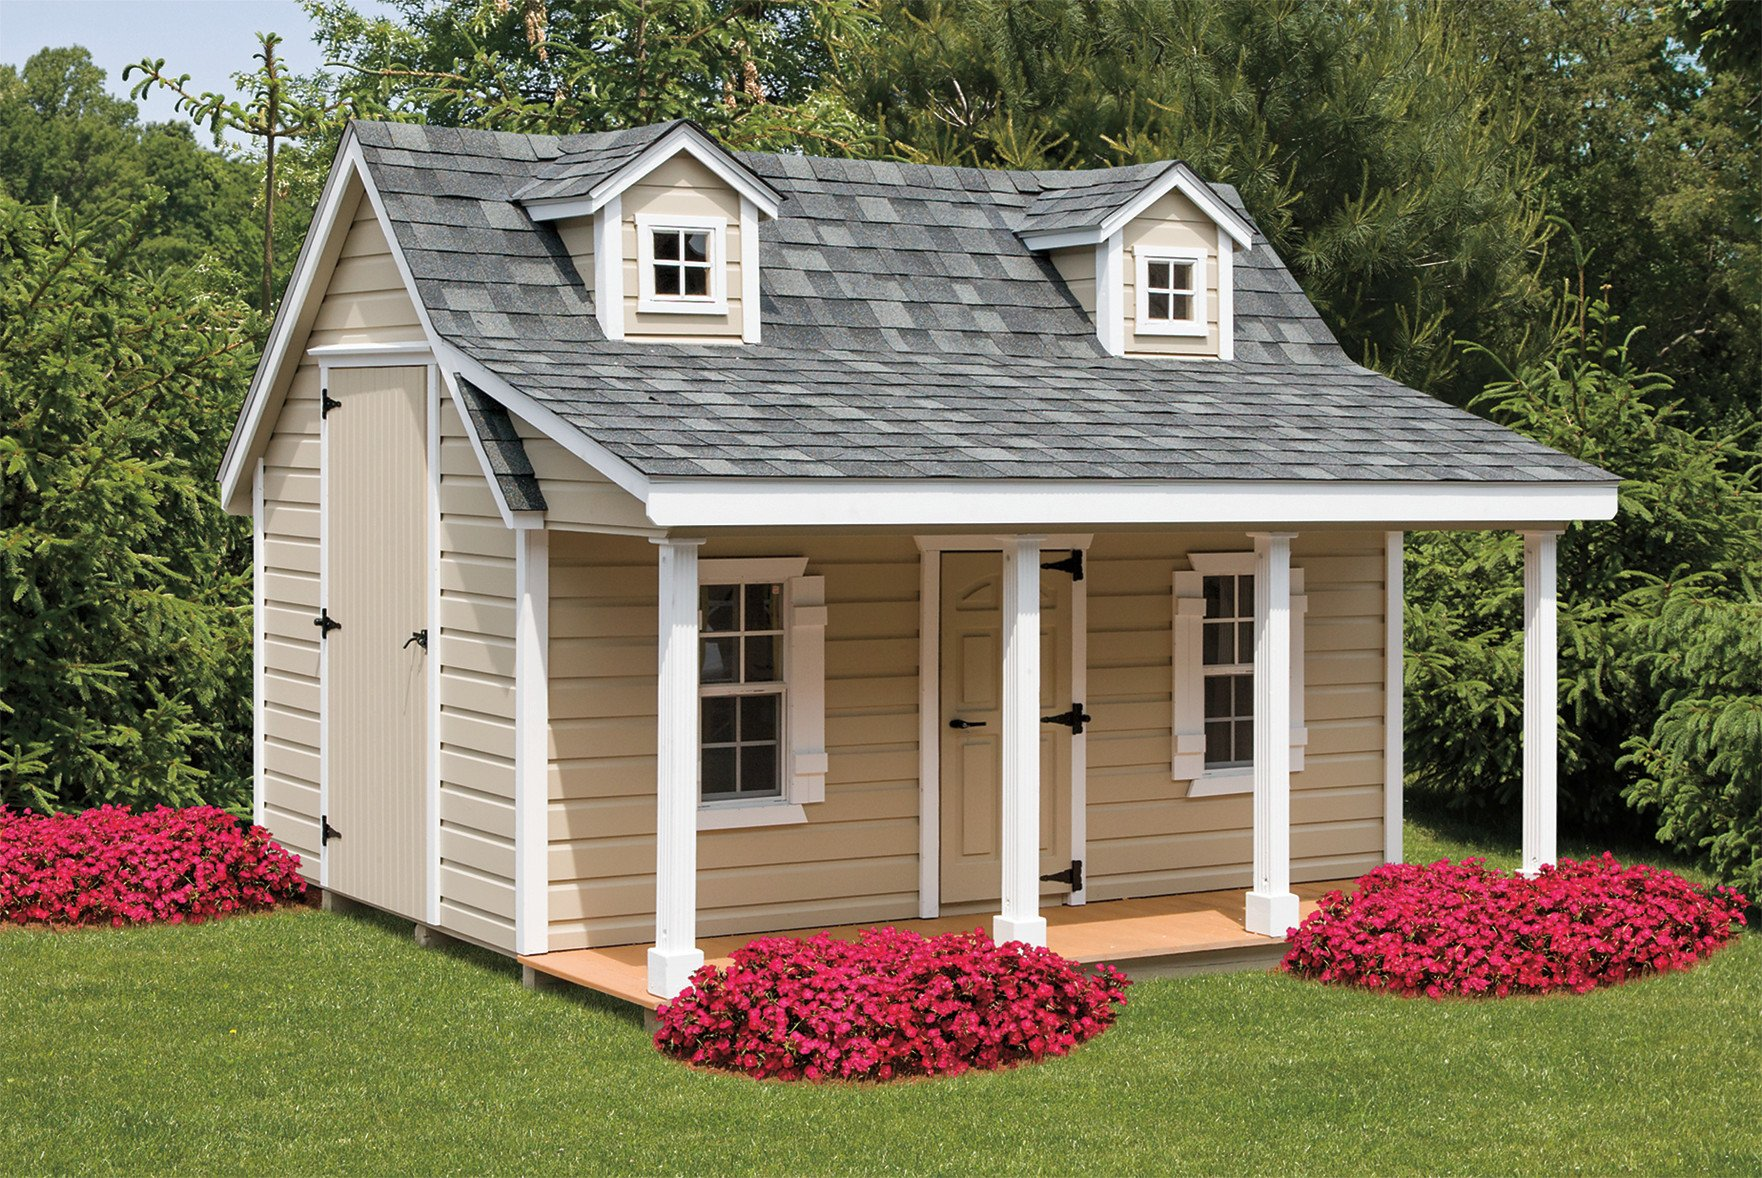 Cottage Haus Playhouse 12x12 The New England Cottage The Shed Haus